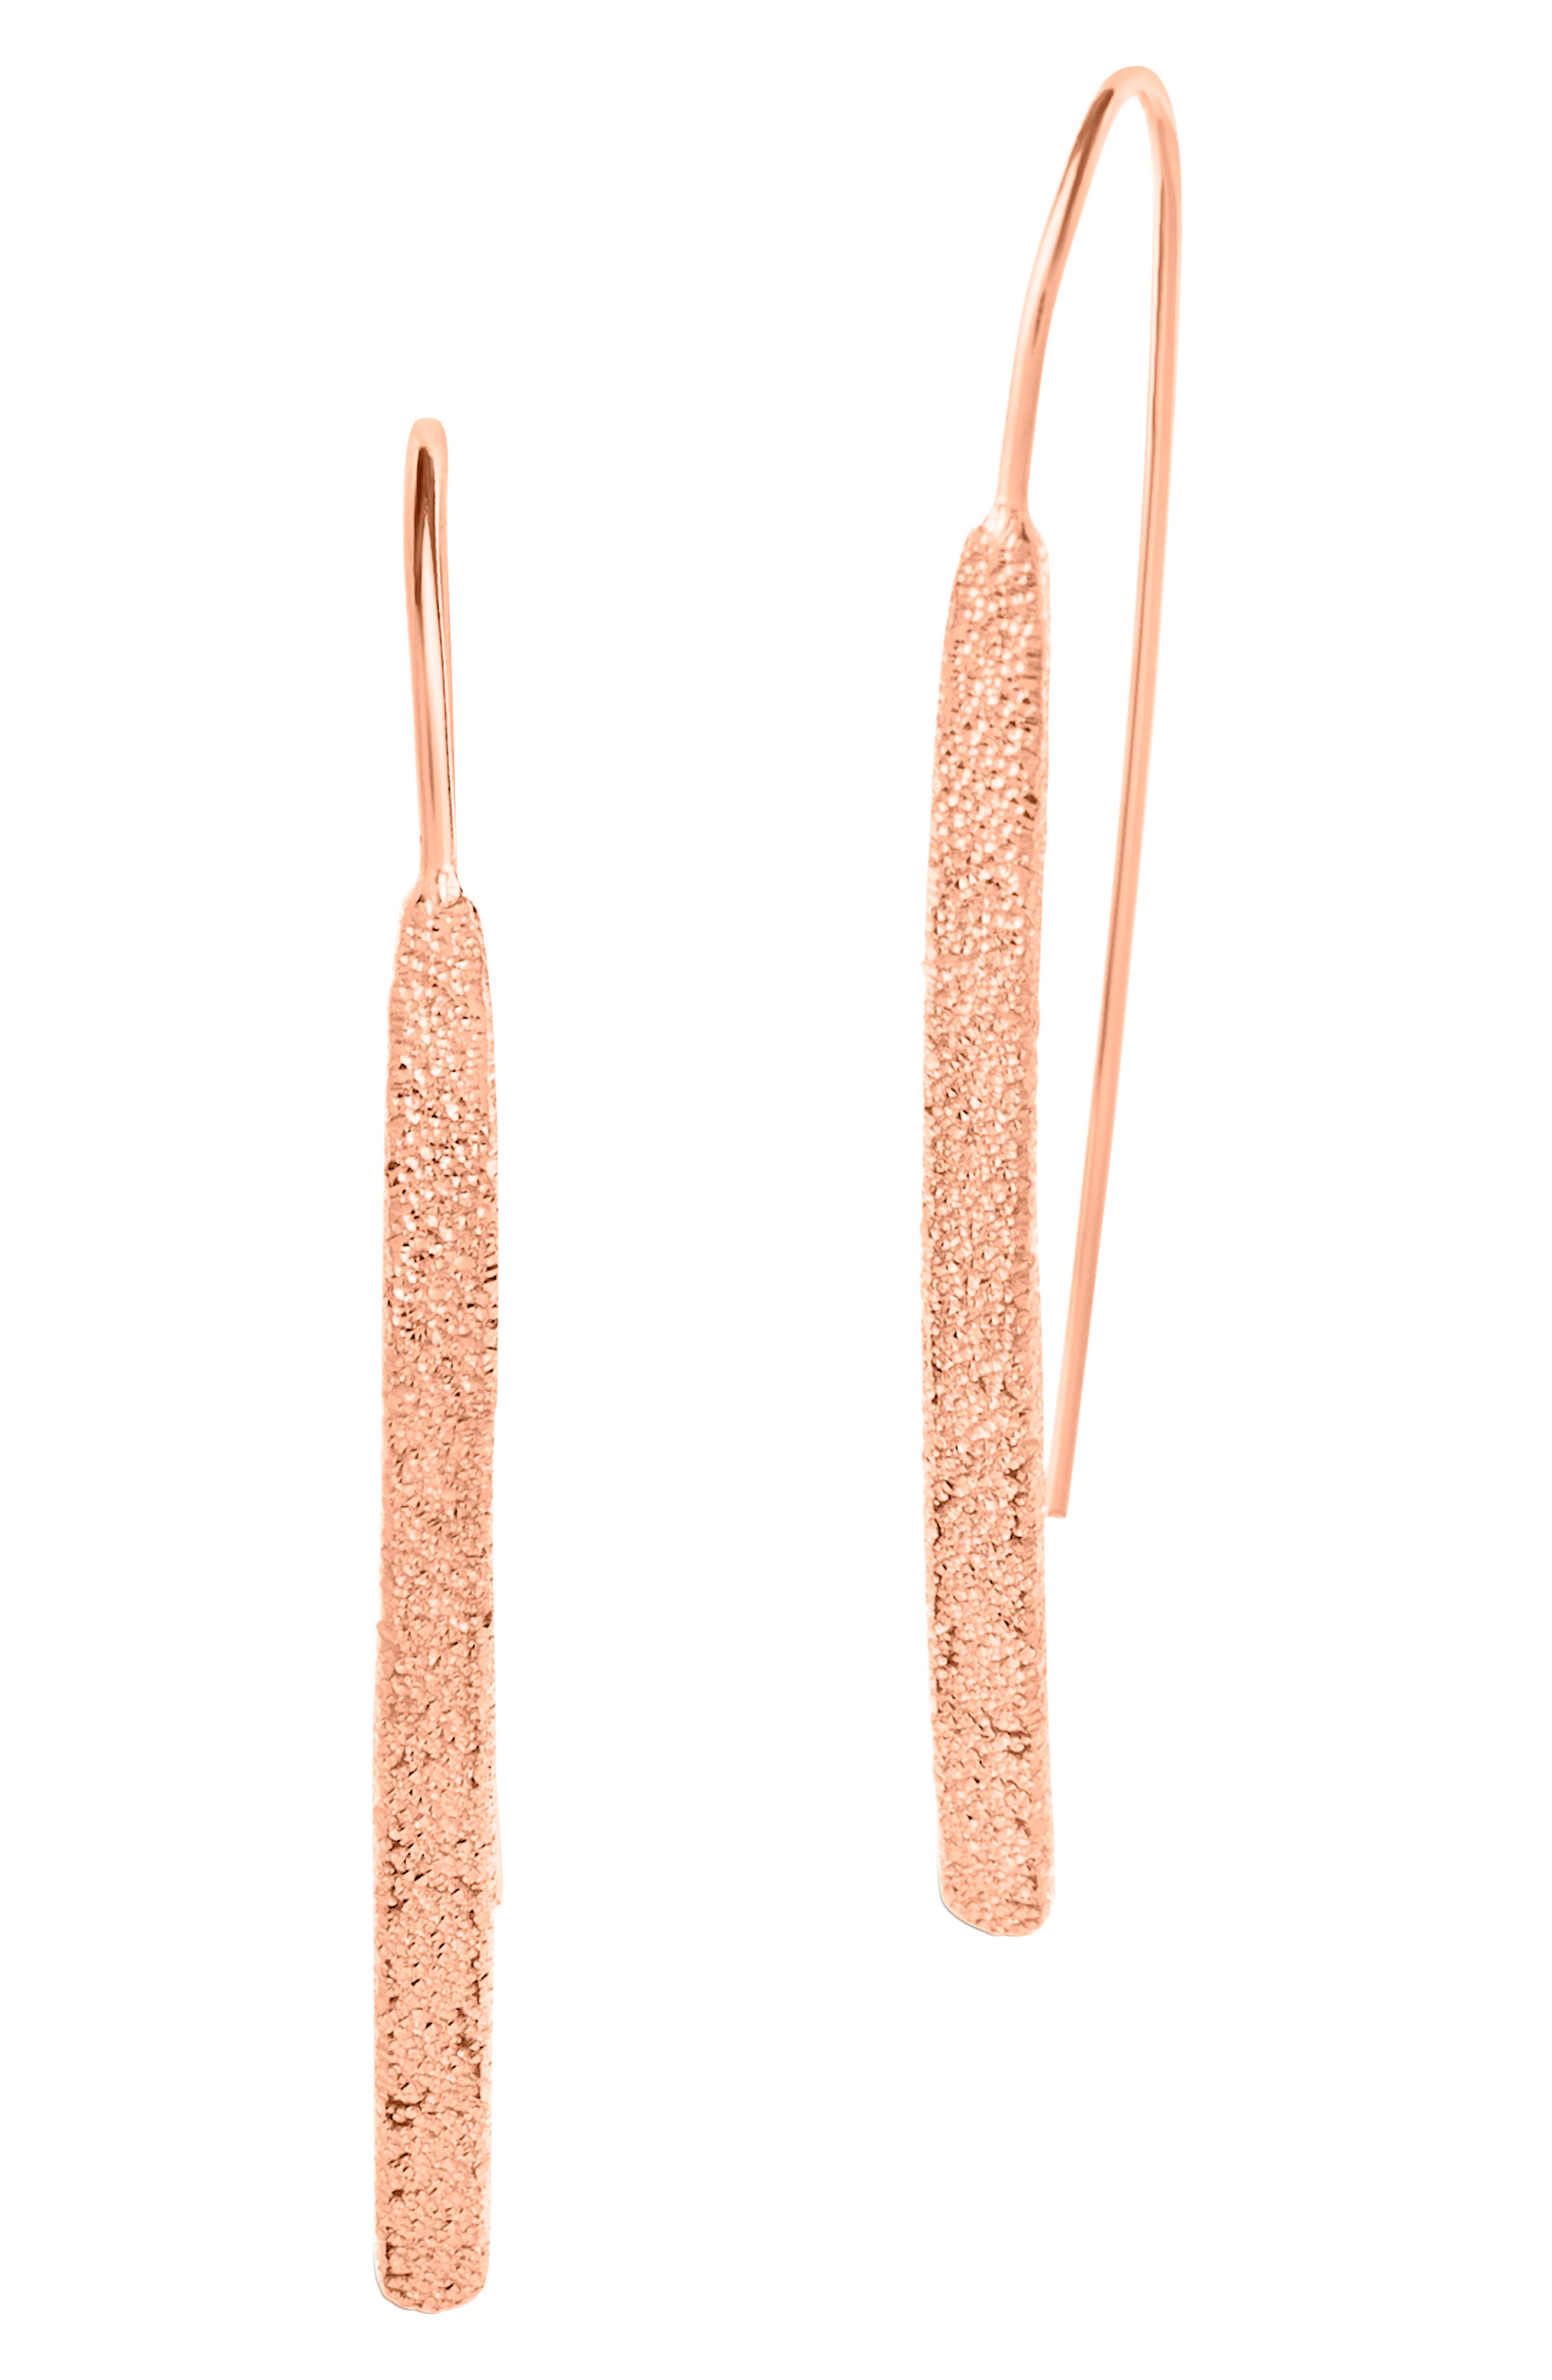 Image of Sterling Forever 14K Rose Gold Vermeil Plated Sterling Silver Textured Threader Earrings